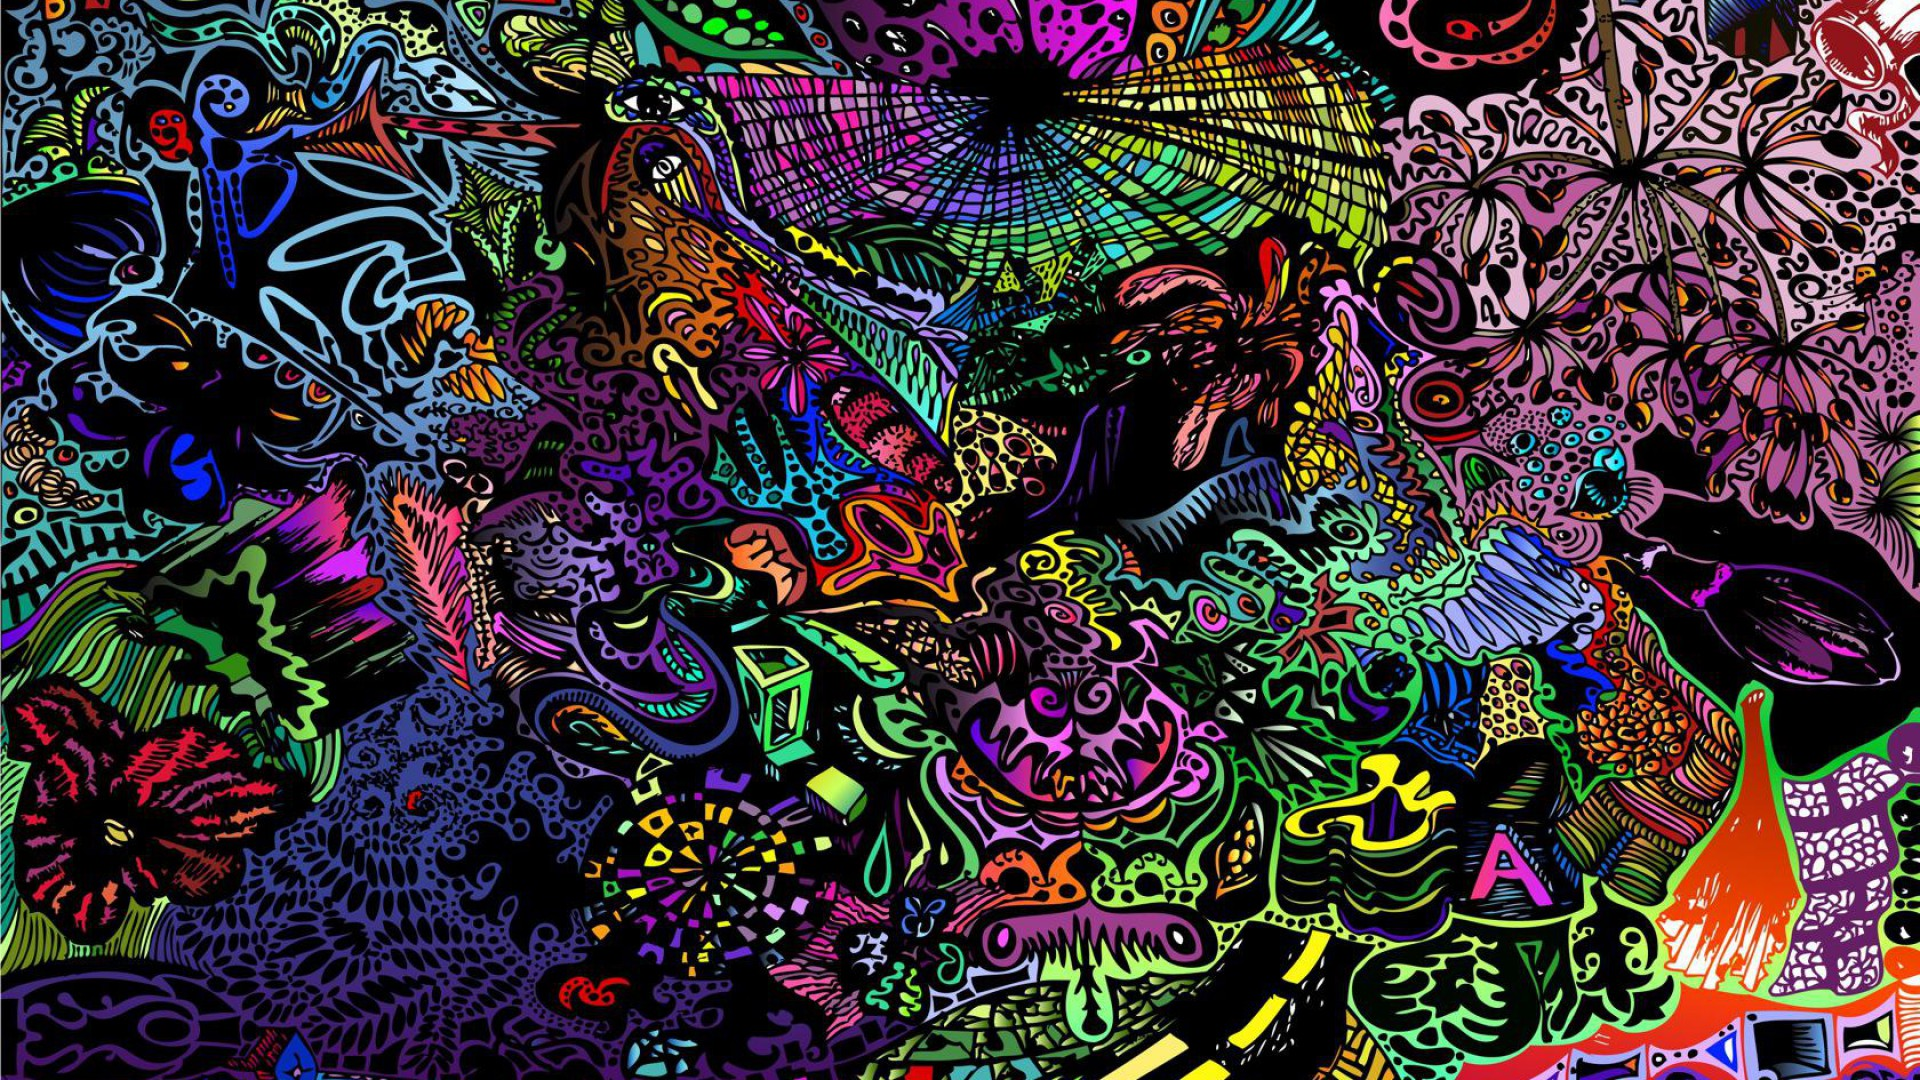 Trippy Wallpapers Hd Space High Definition Unique Hd Wallpapers 1920x1080